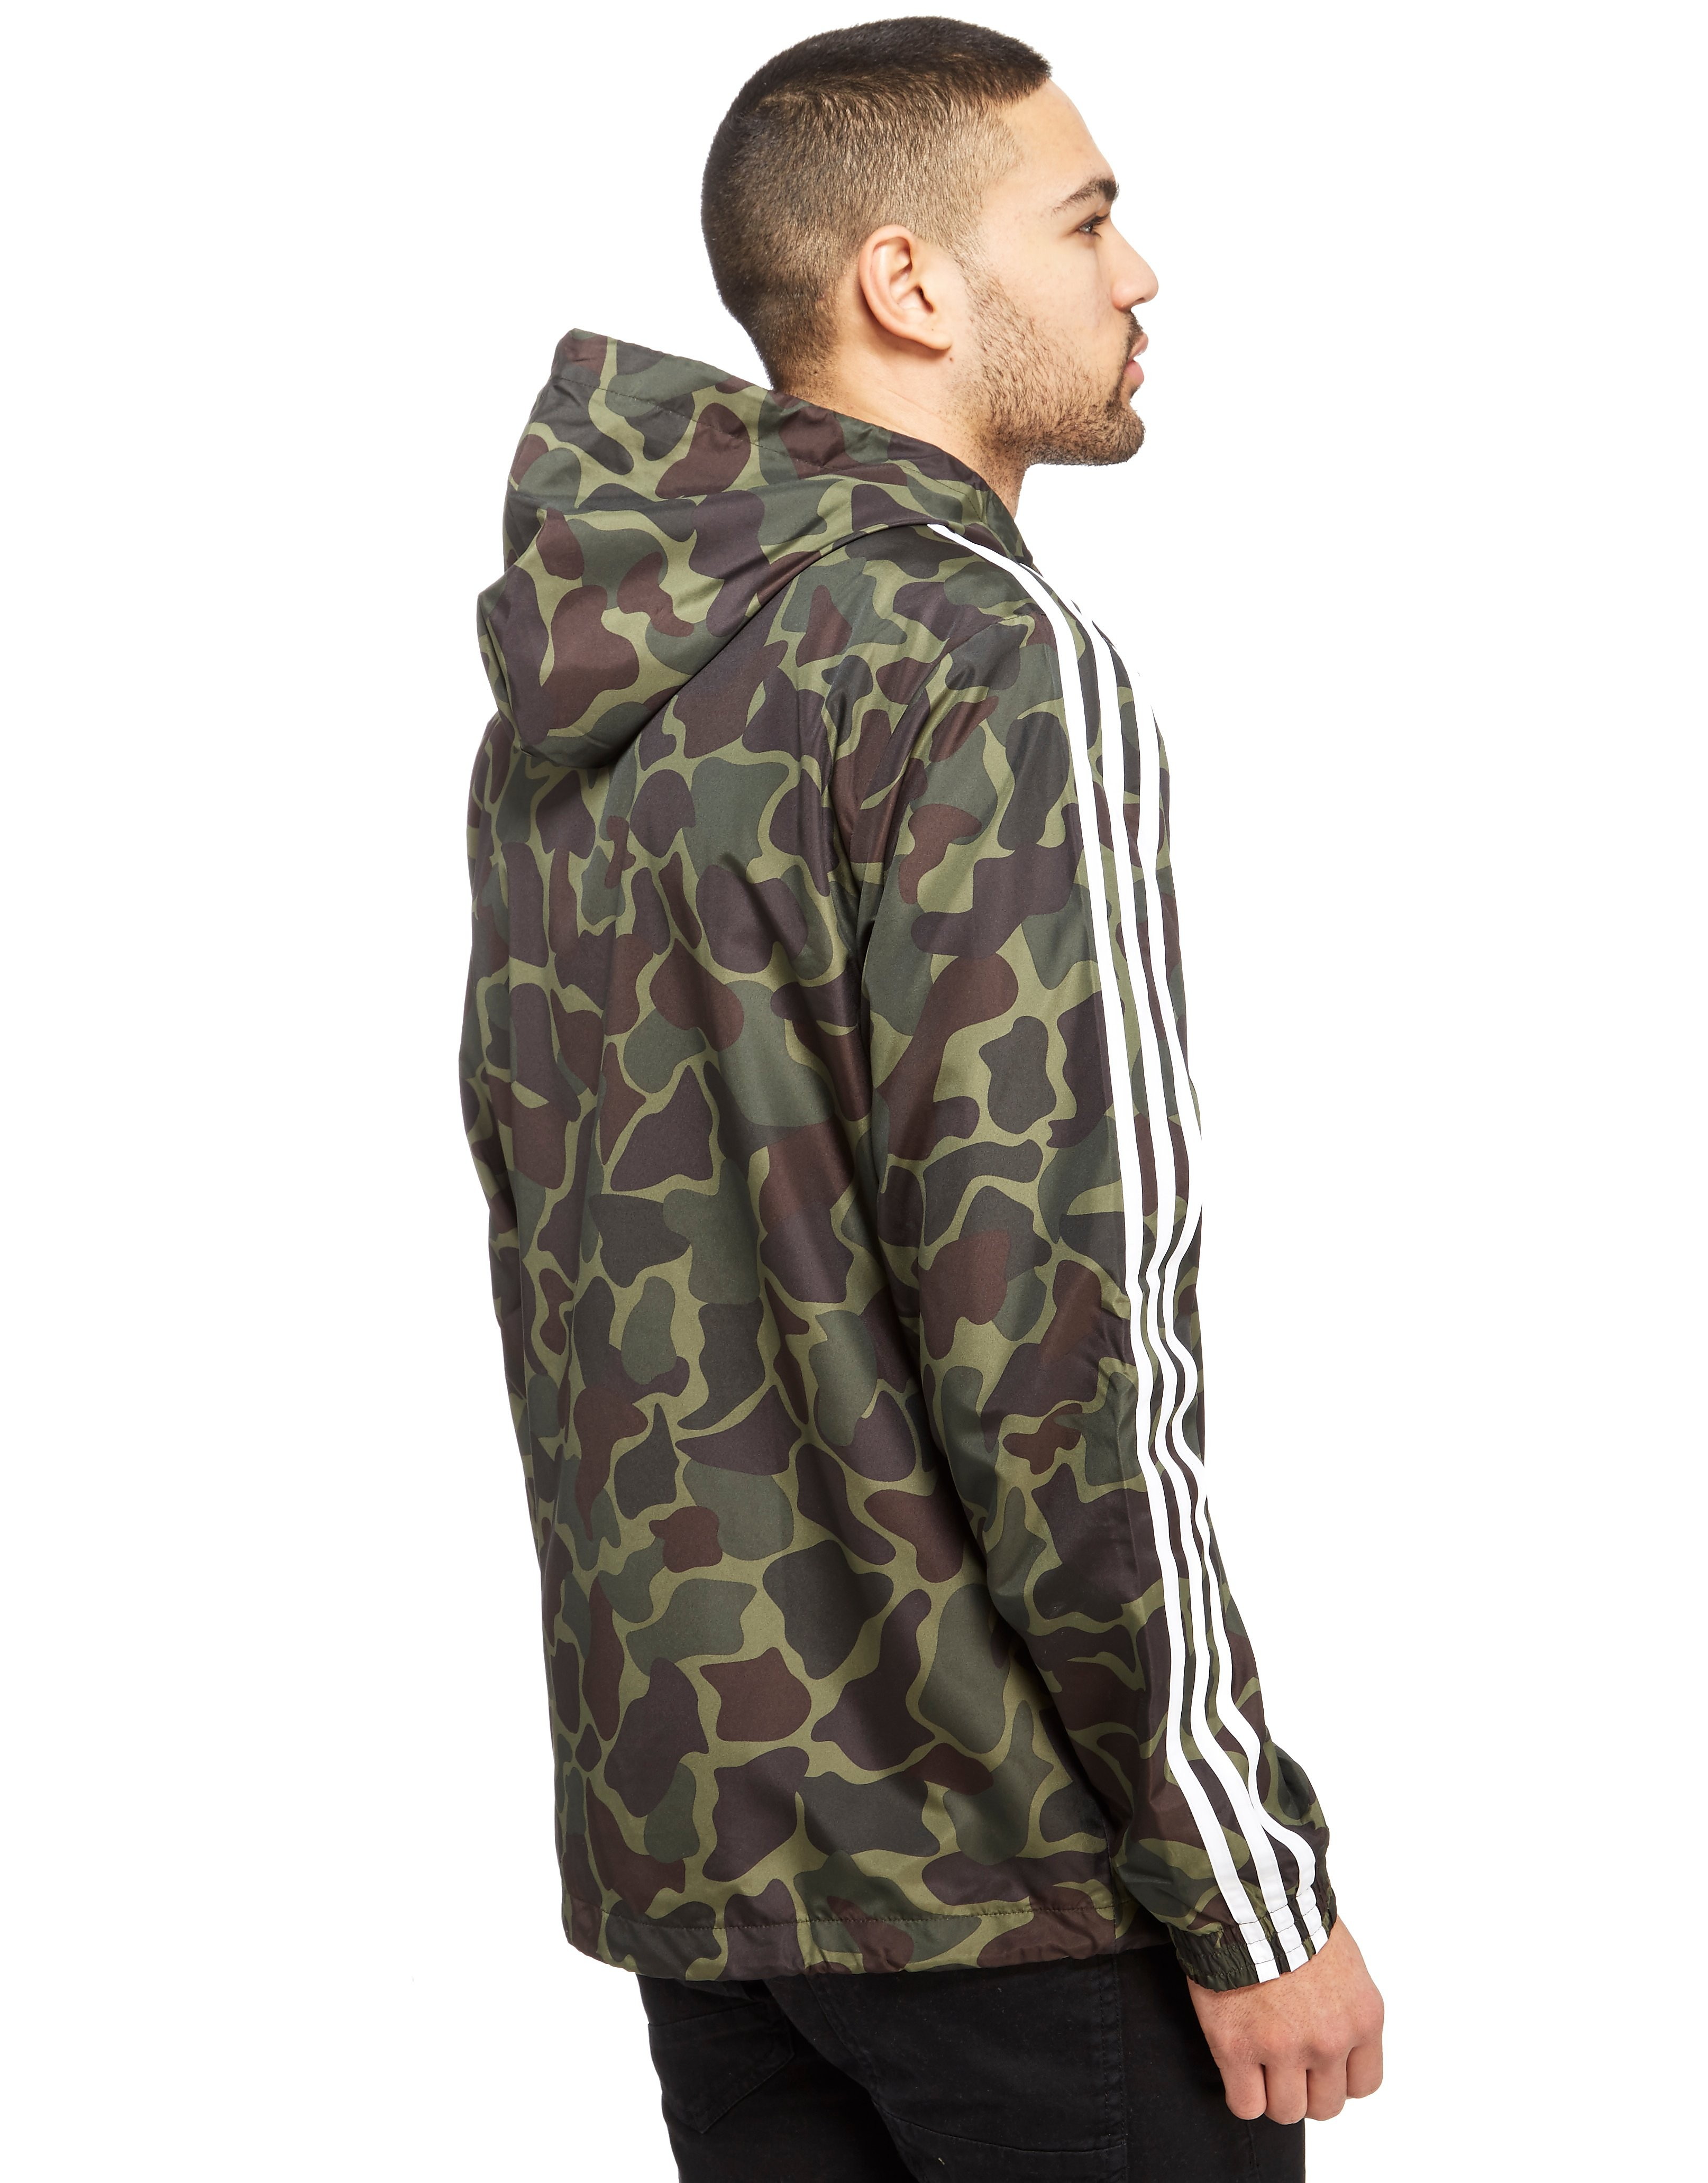 adidas Originals Trefoil All Over Print Jacket